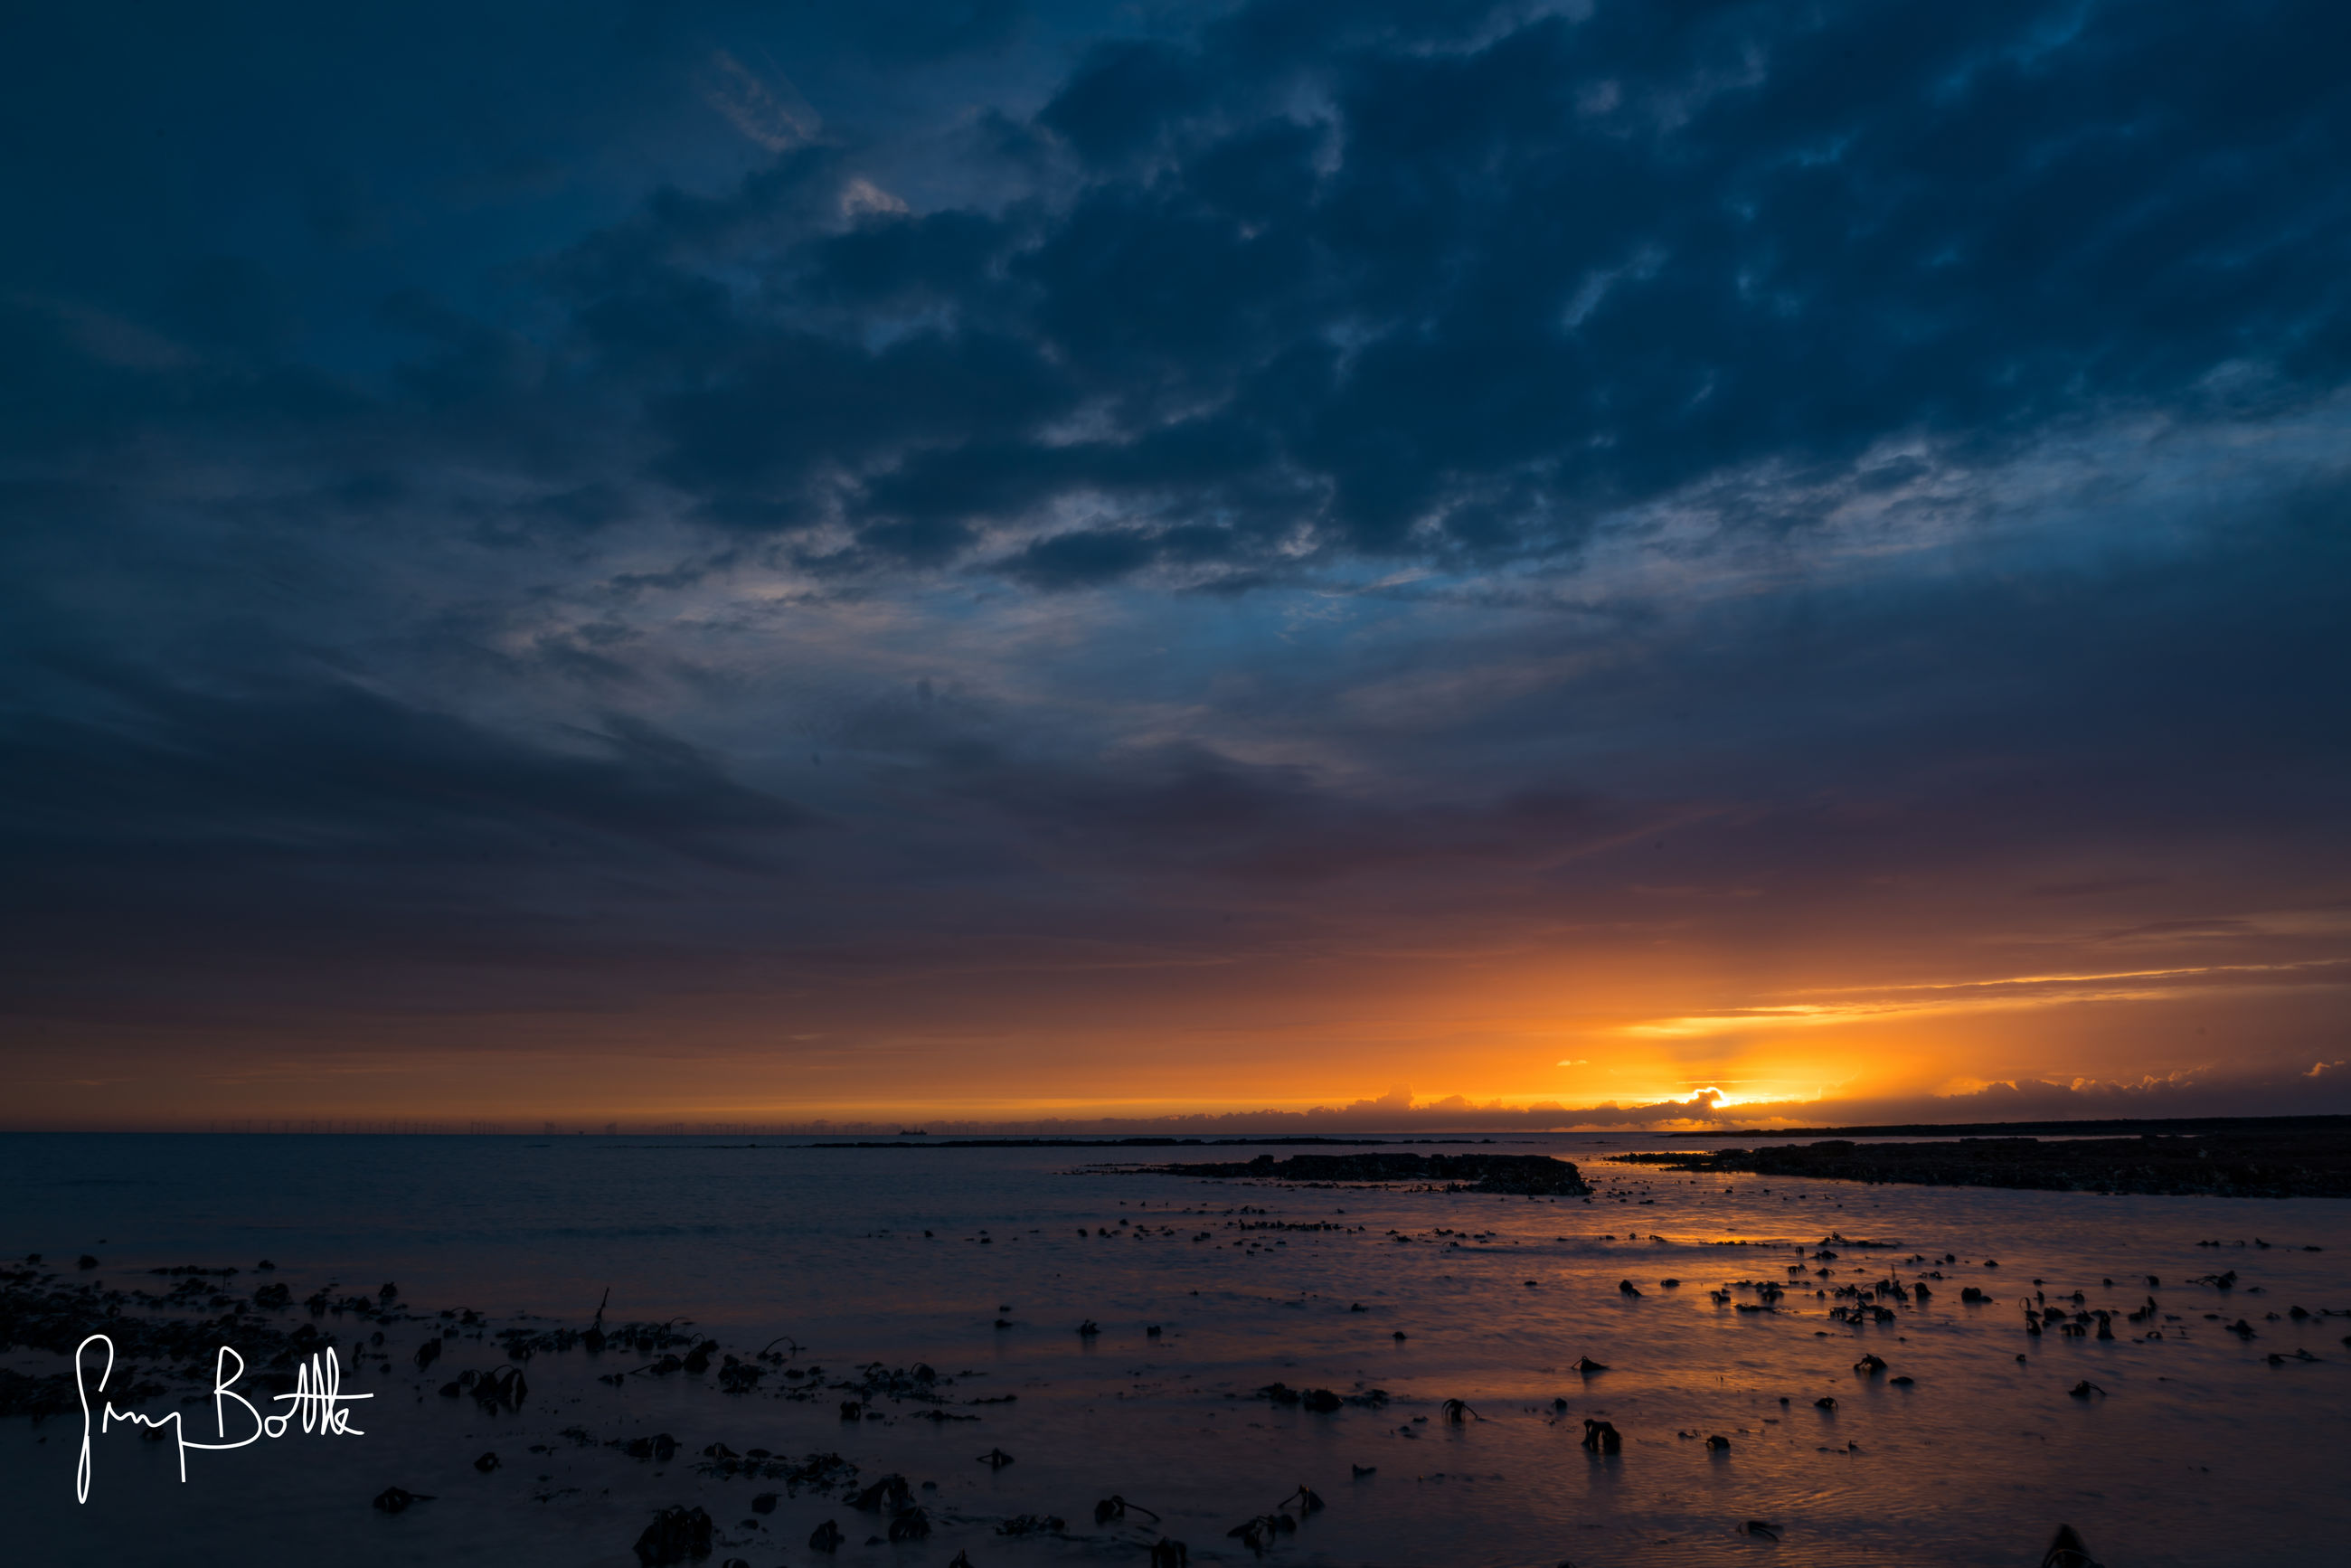 sea, sunset, nature, beach, sky, beauty in nature, scenics, outdoors, cloud - sky, no people, vacations, water, horizon over water, day